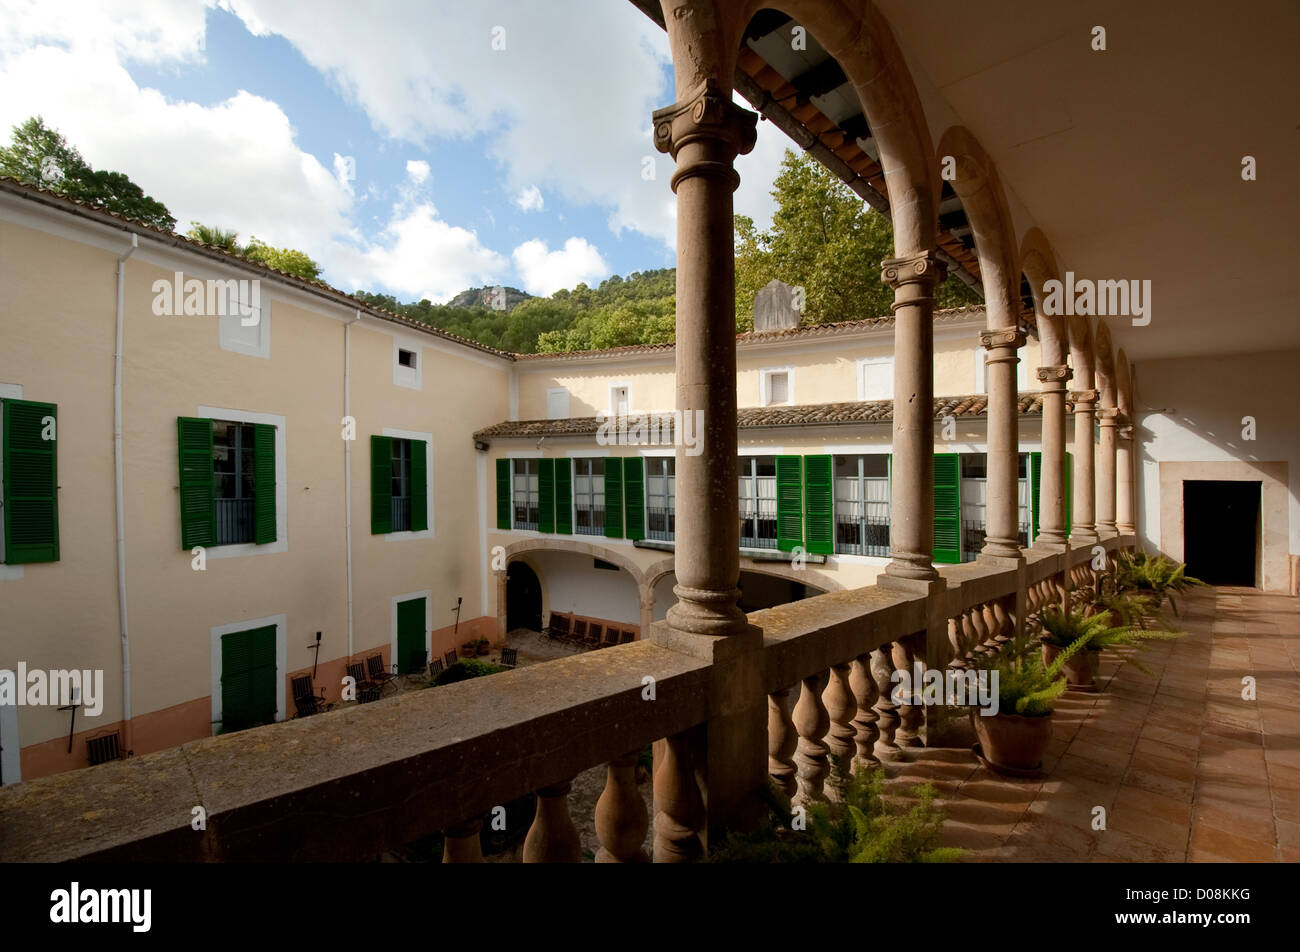 Mallorca, Sa Granja typical country house from 18th19th century - Stock Image